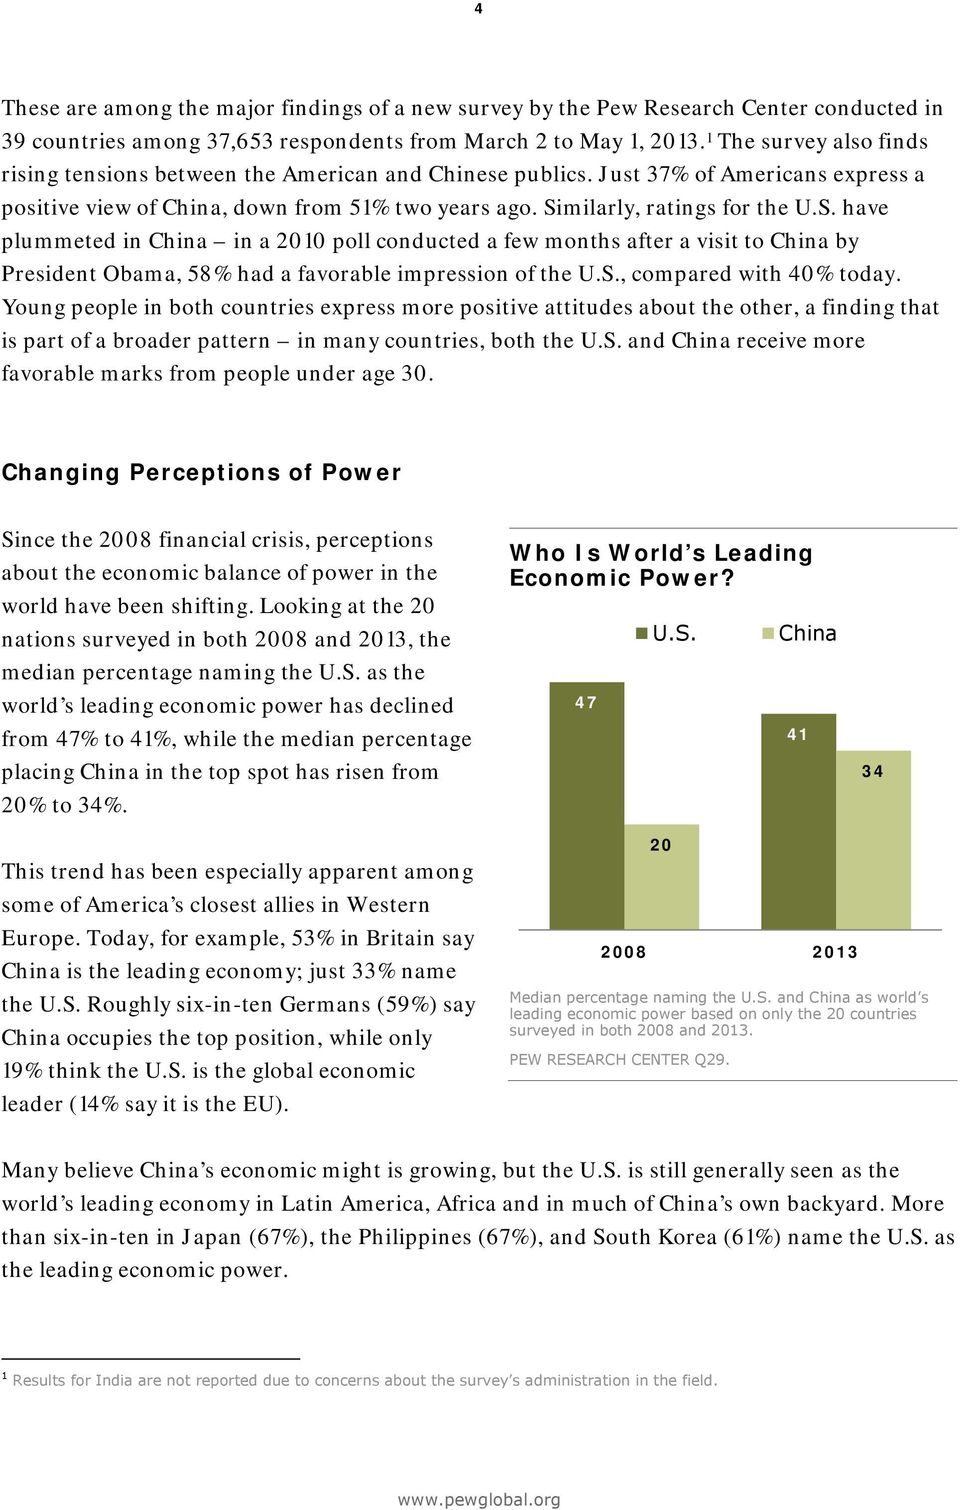 milarly, ratings for the U.S. have plummeted in China in a poll conducted a few months after a visit to China by President Obama, % had a favorable impression of the U.S., compared with % today.